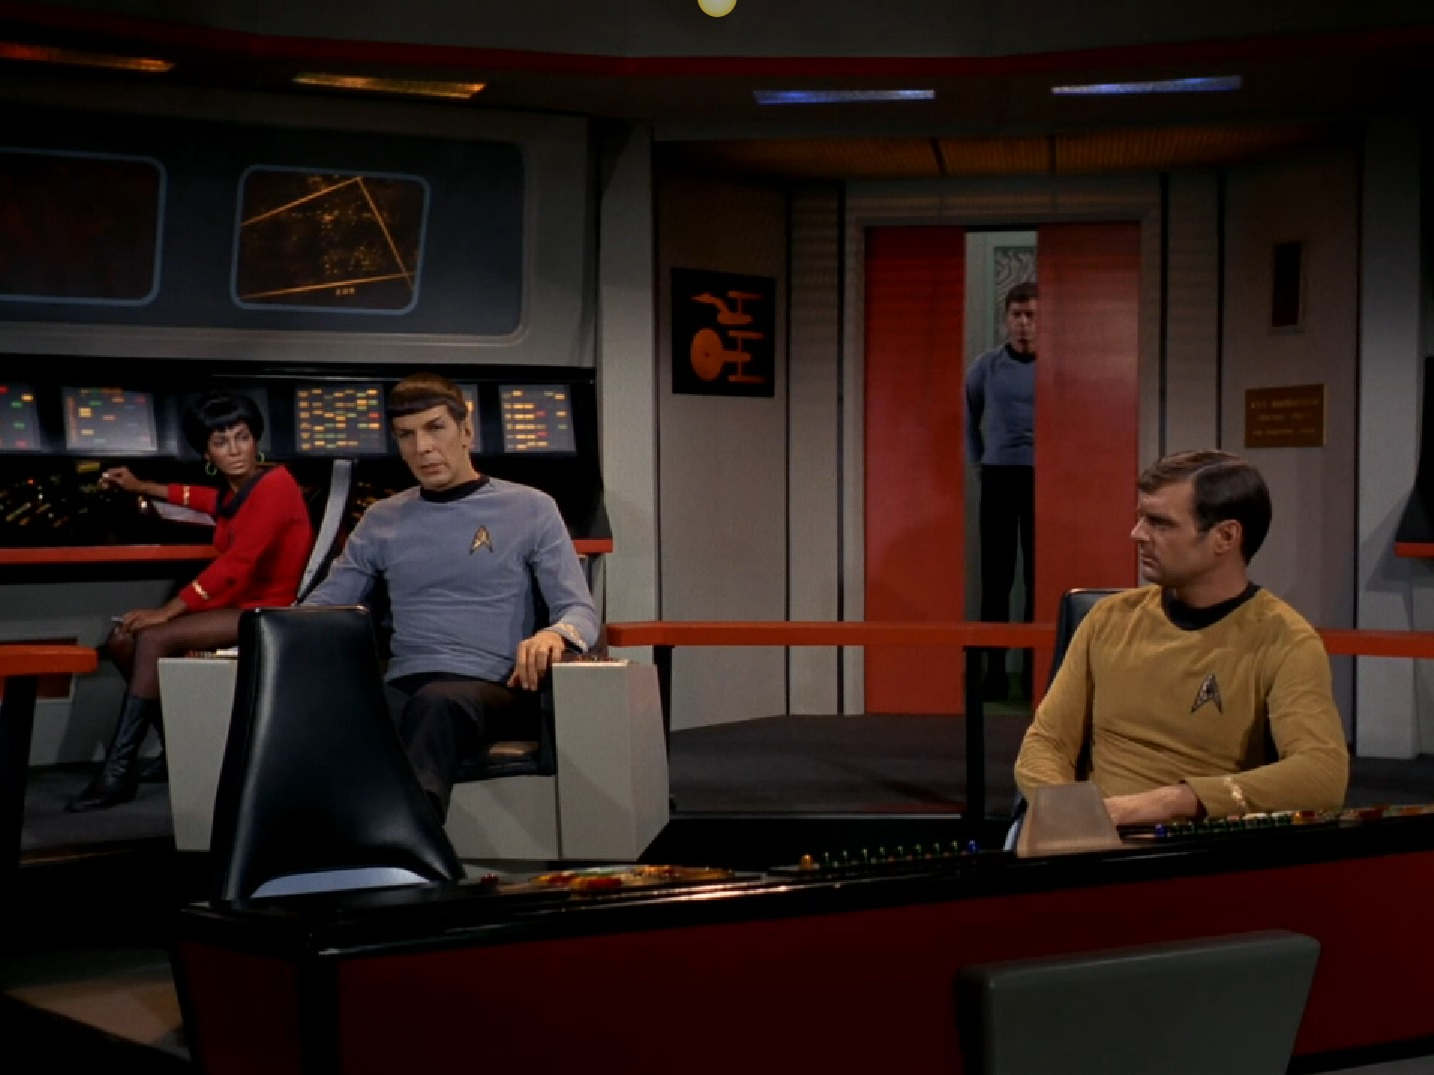 star trek captains chair office vintage discovery timeline and continuity issues